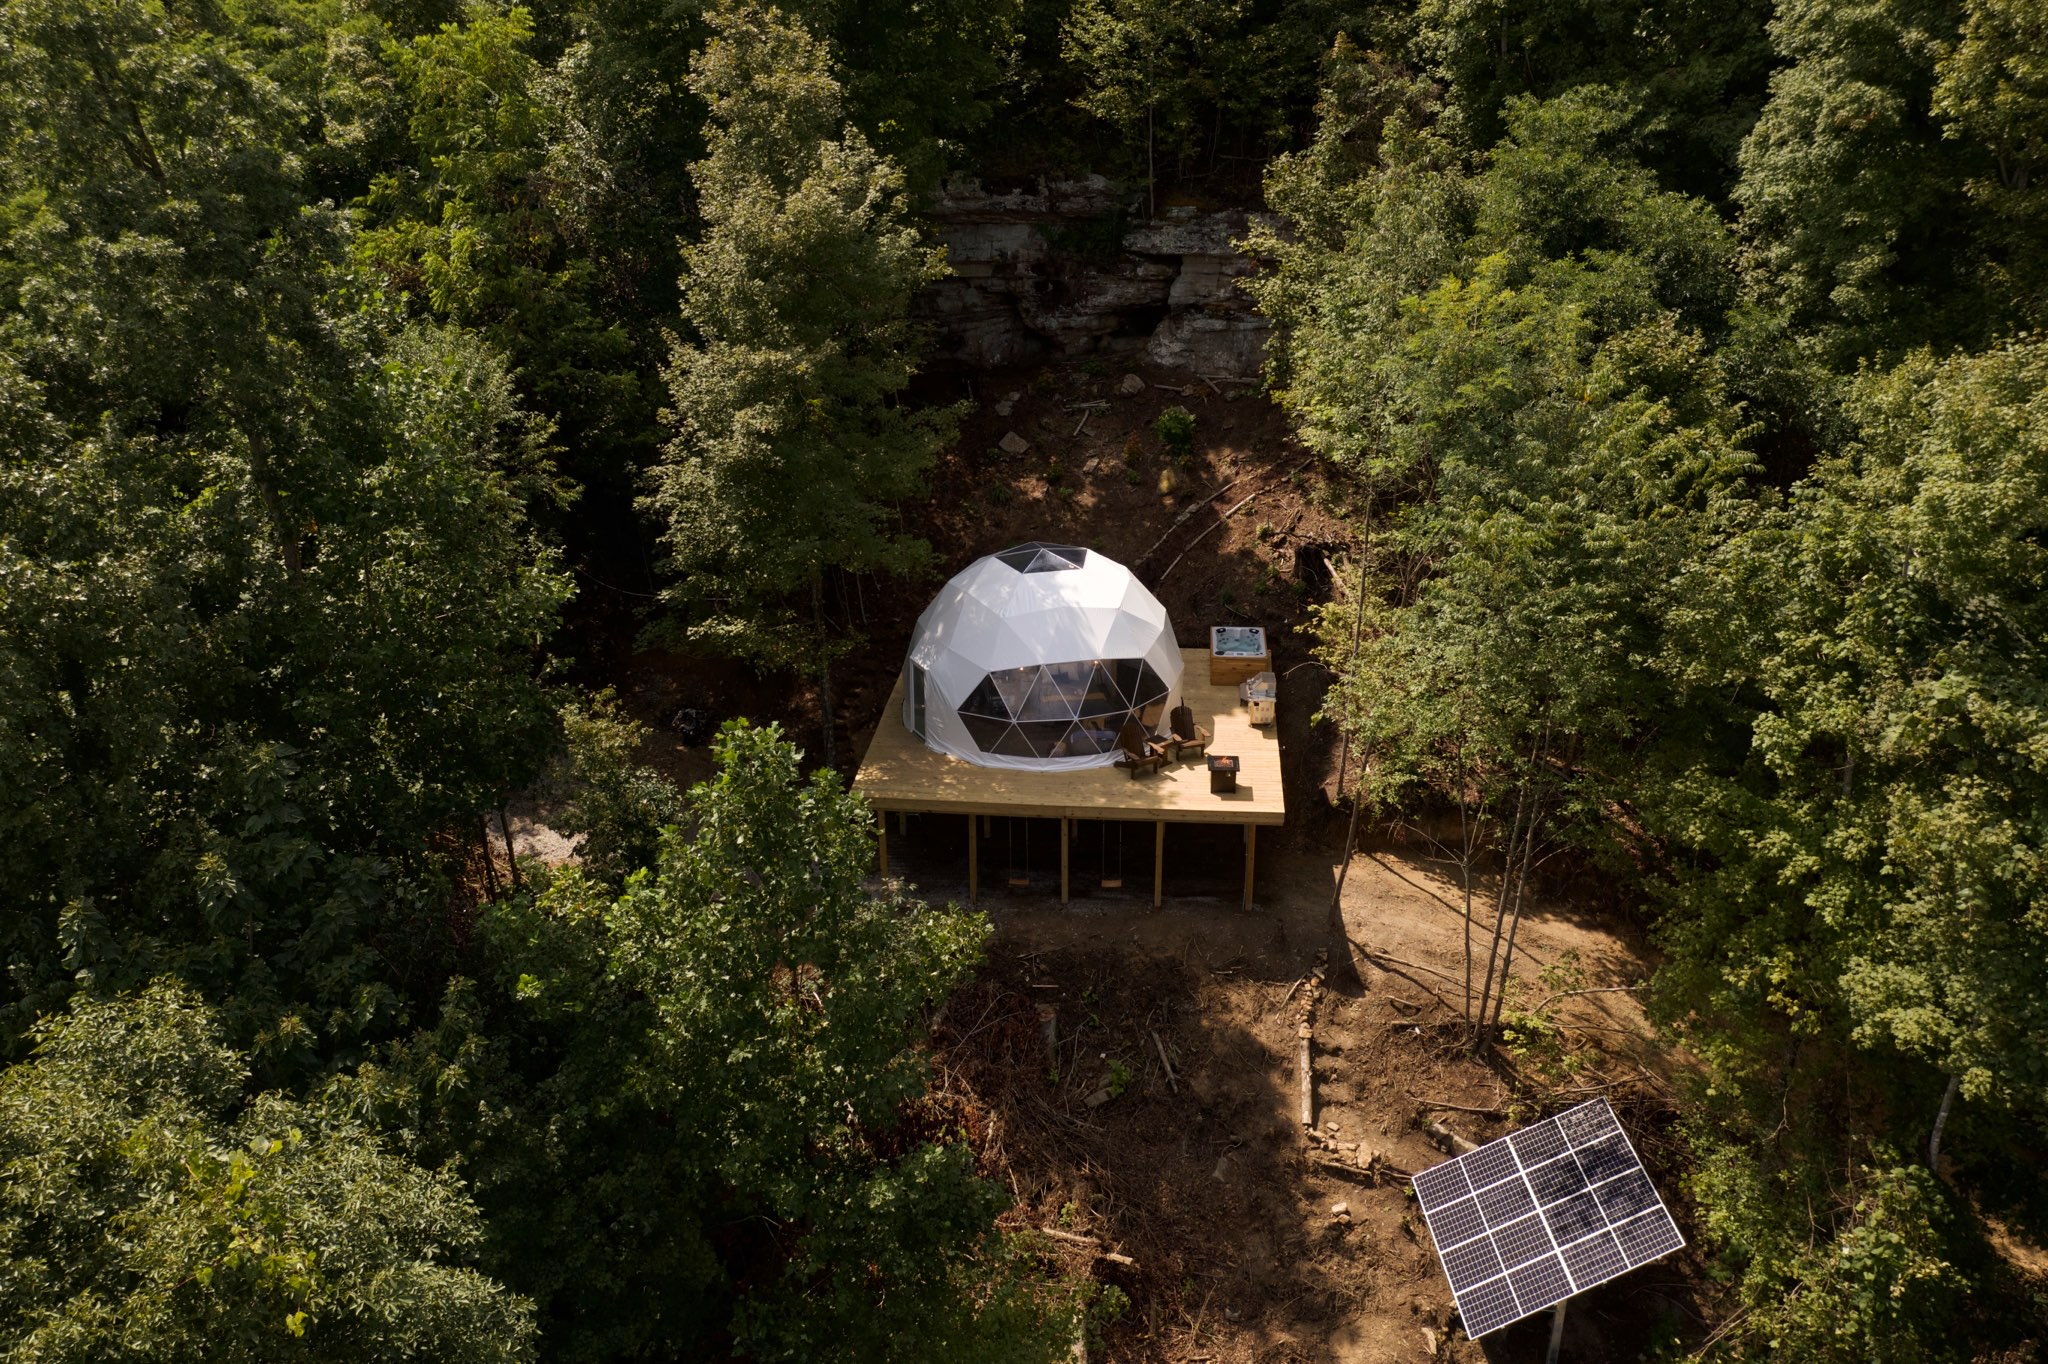 Luxury Glamping Geodesic Dome